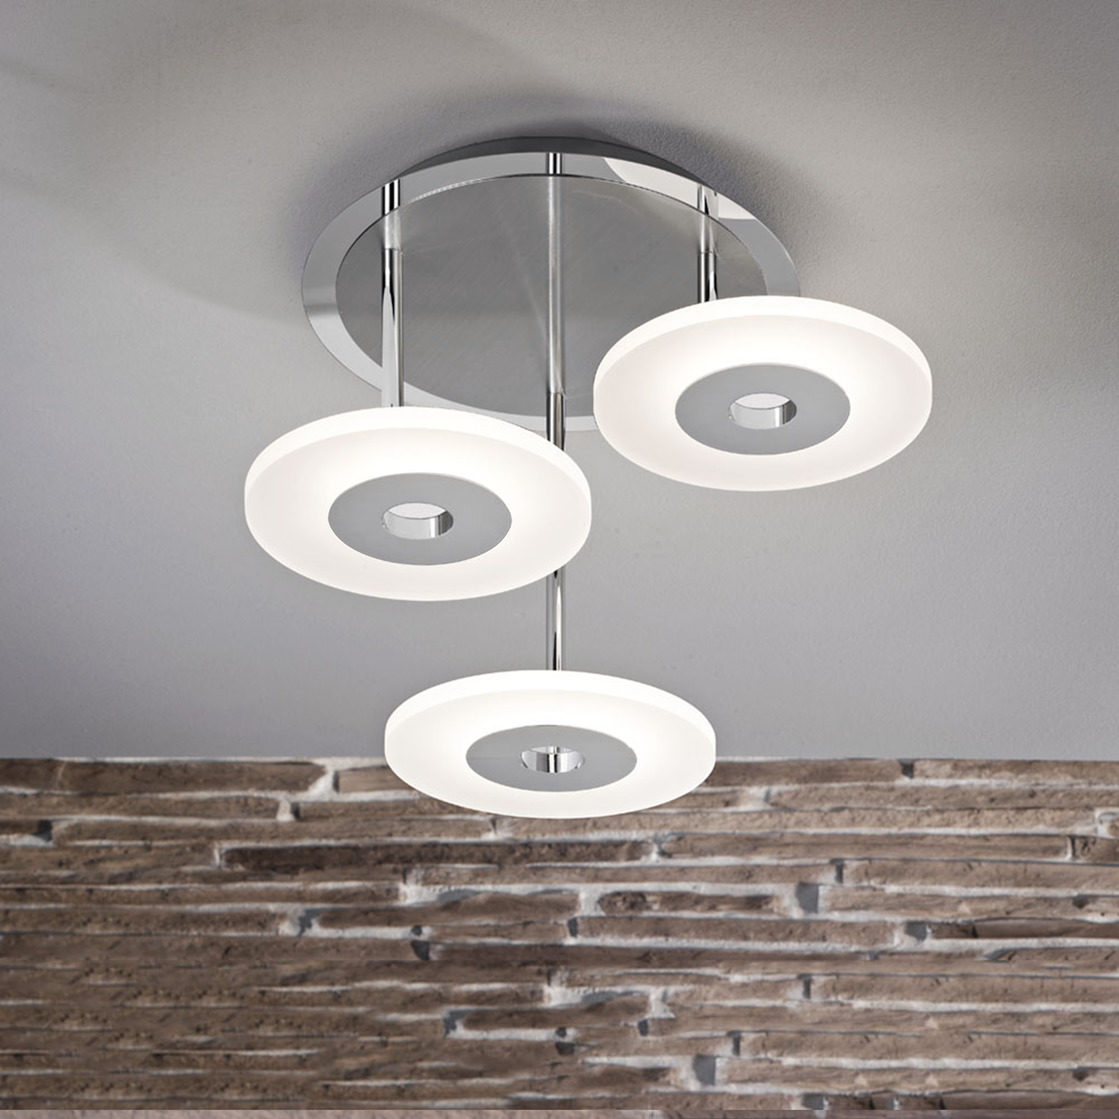 lampen wohnzimmer led : Awesome Wohnzimmer Led Lampen Pictures Ideas Design